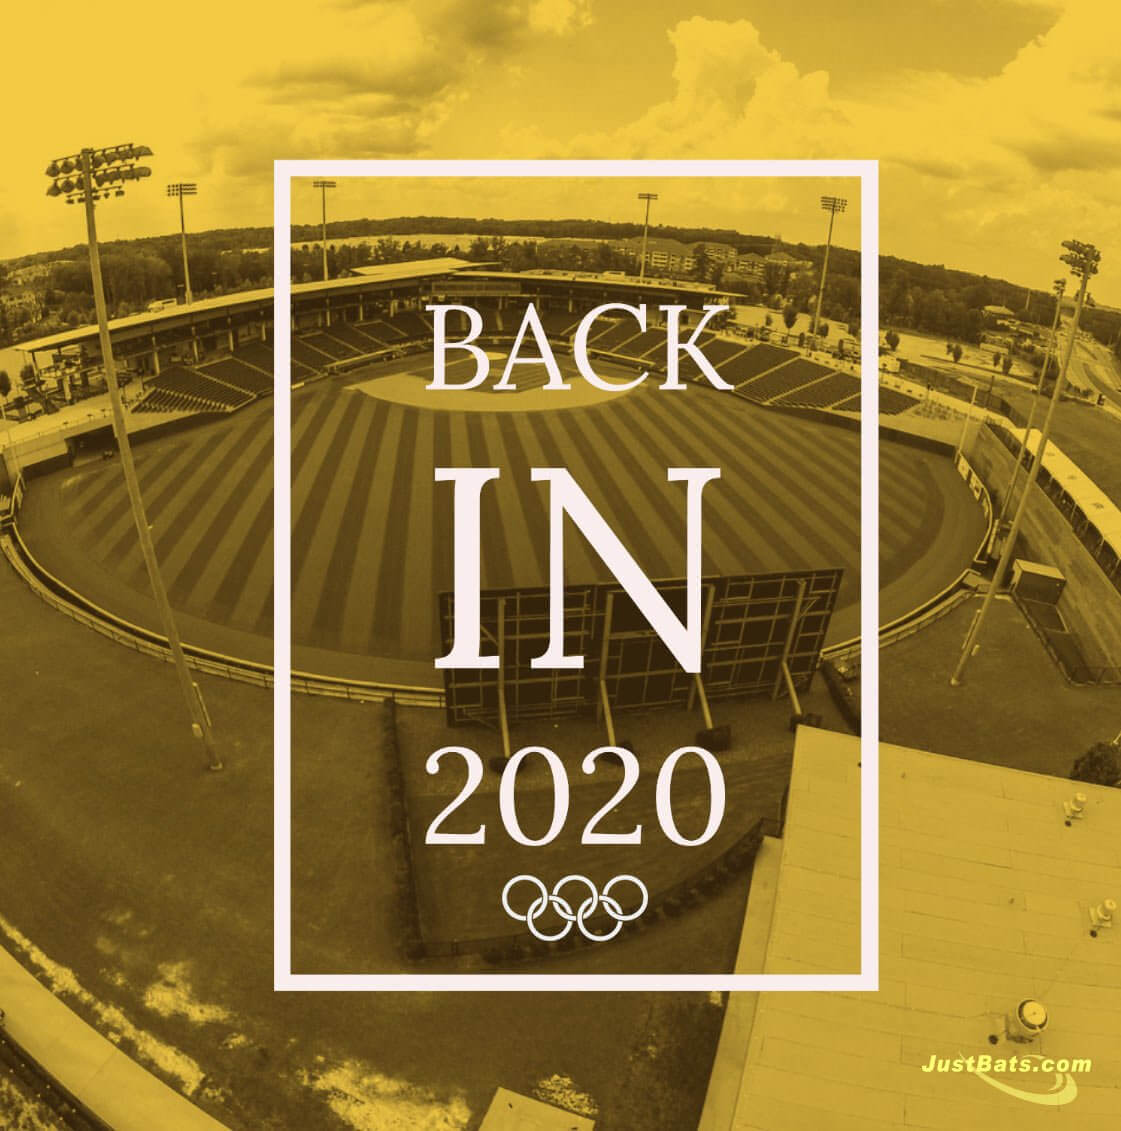 5 Things About Baseball & Softball in 2020 Olympics